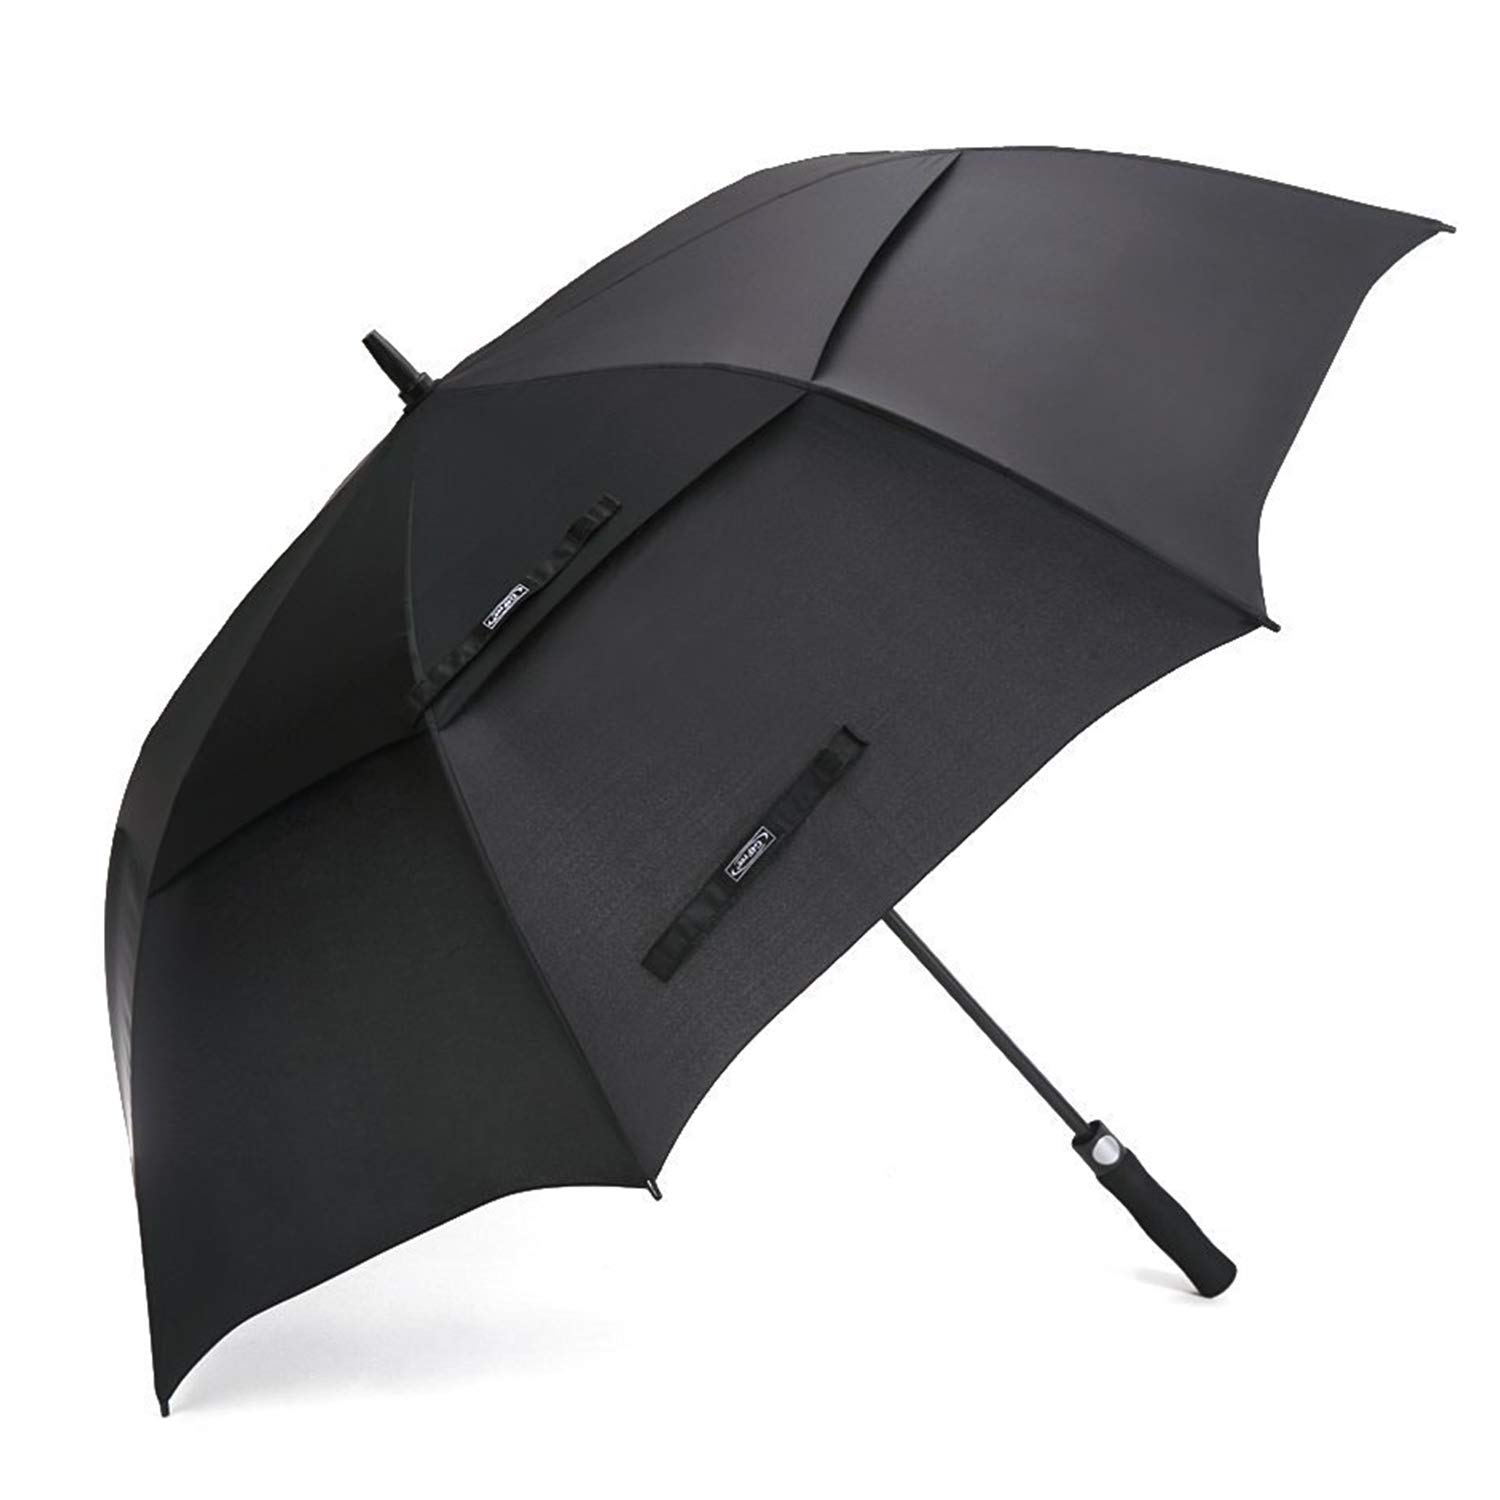 457444077cb5 G4Free 54/62 Inch Automatic Open Golf Umbrella Extra Large Oversize Double  Canopy Vented Windproof Waterproof Stick Umbrellas